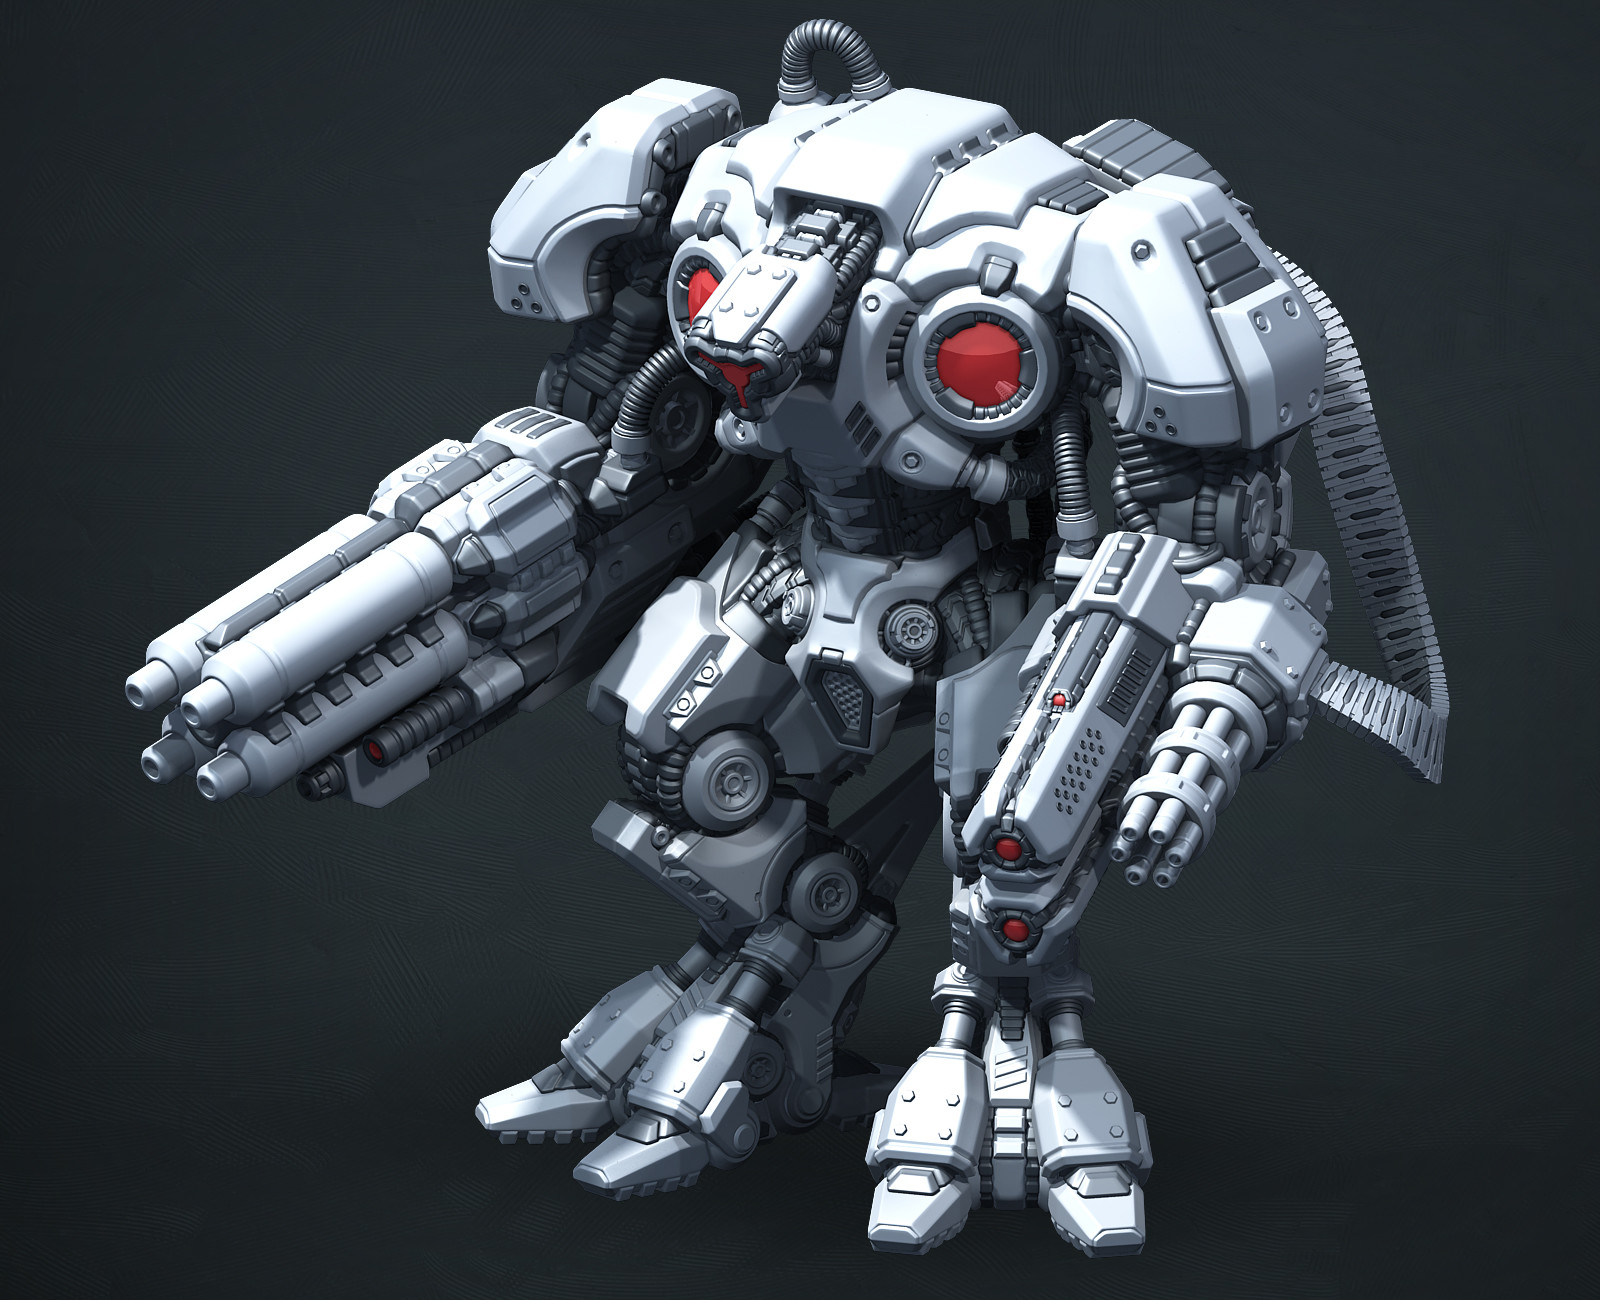 Vladimir voronov warmachine highpoly02